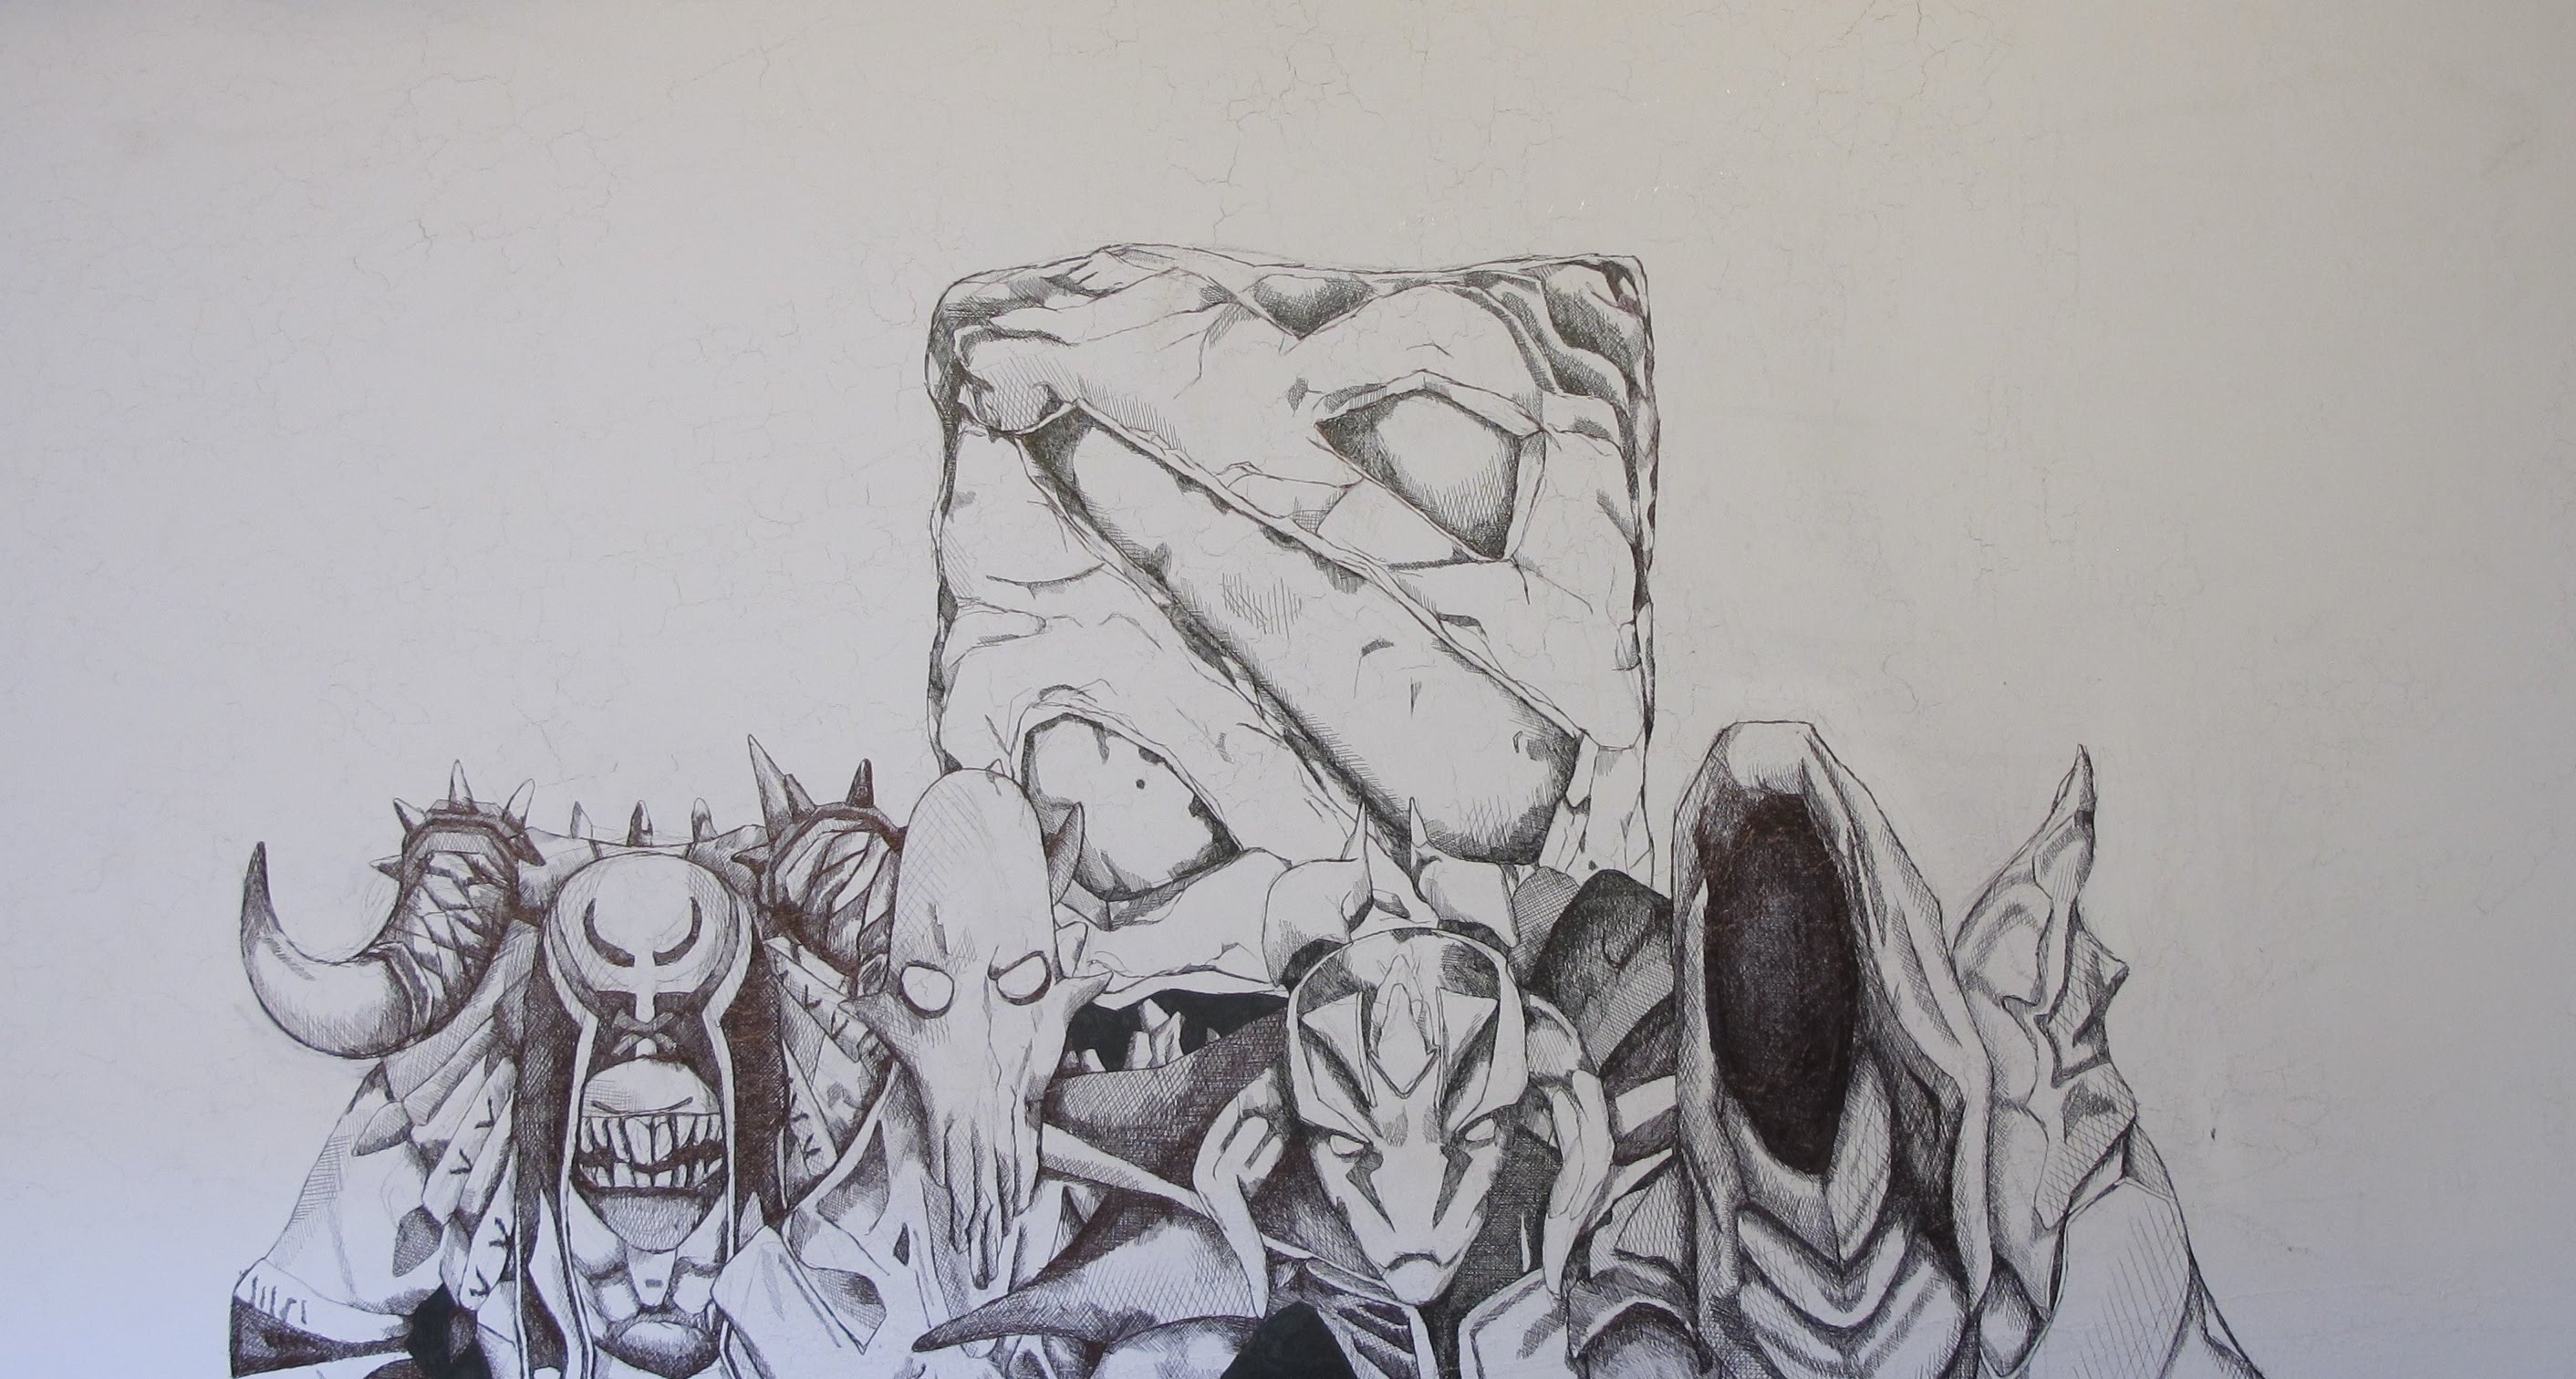 dota 2 drawing at getdrawings com free for personal use dota 2